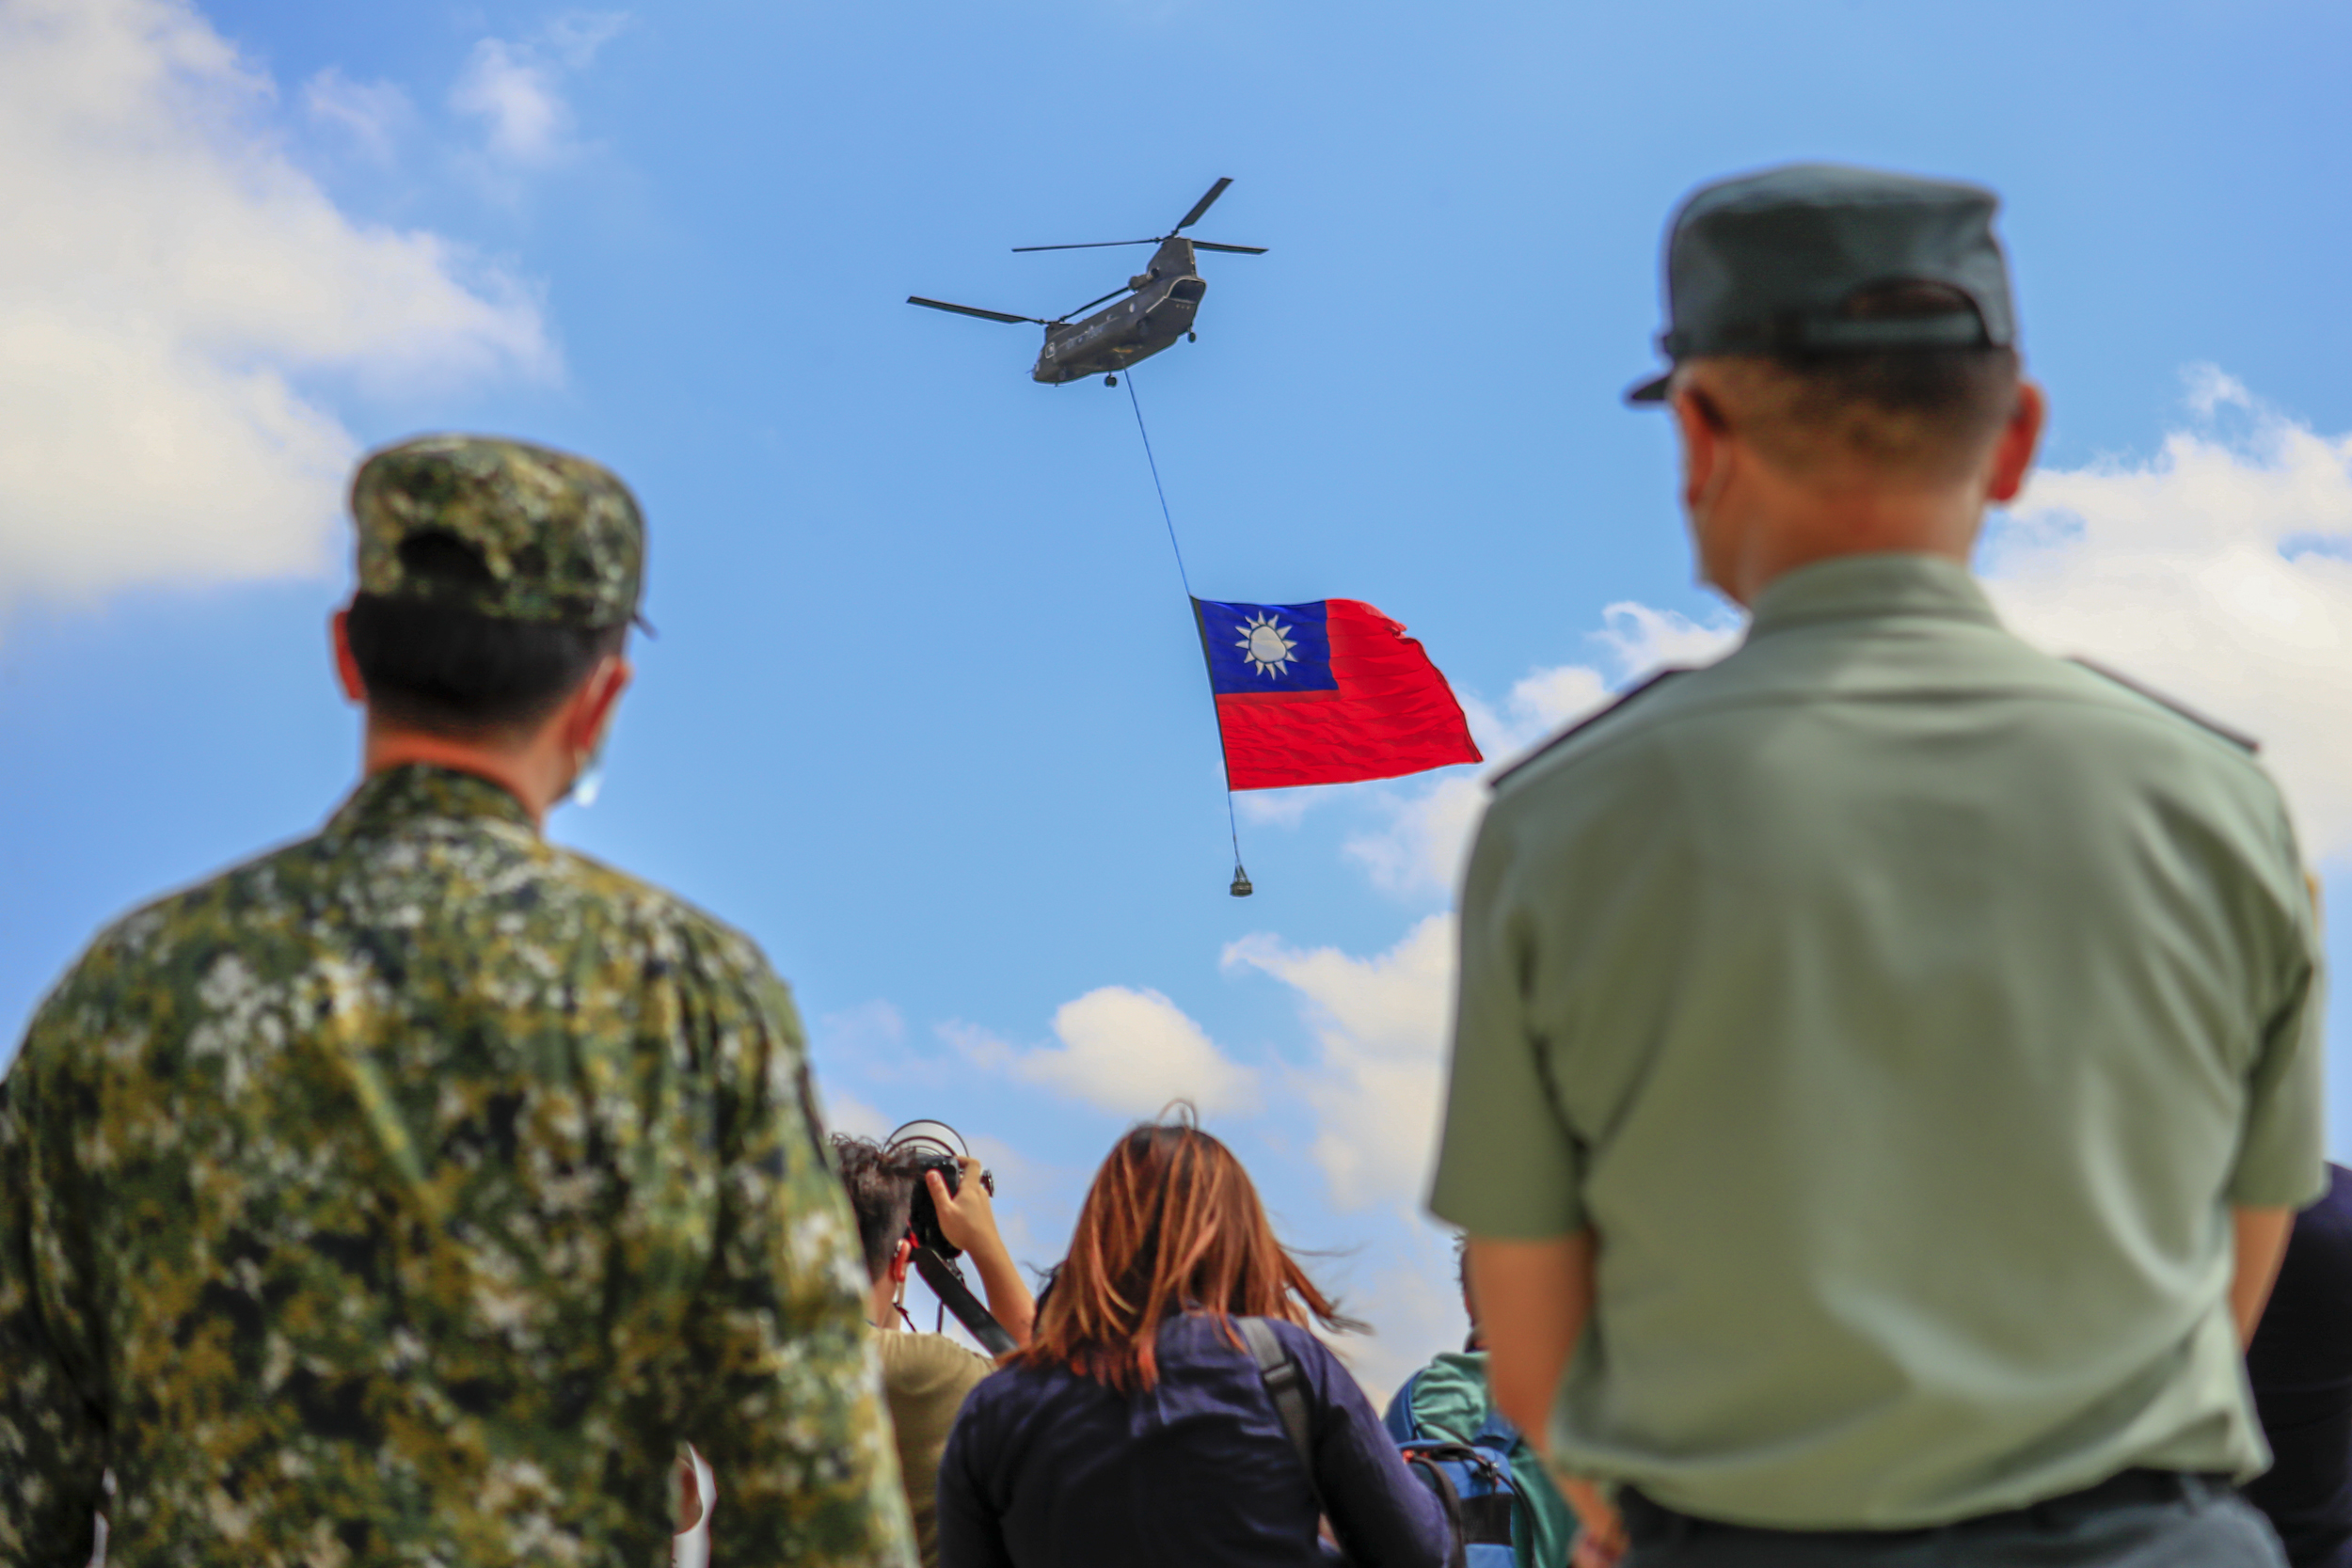 What people are missing about China's incursions into the Taiwan Strait